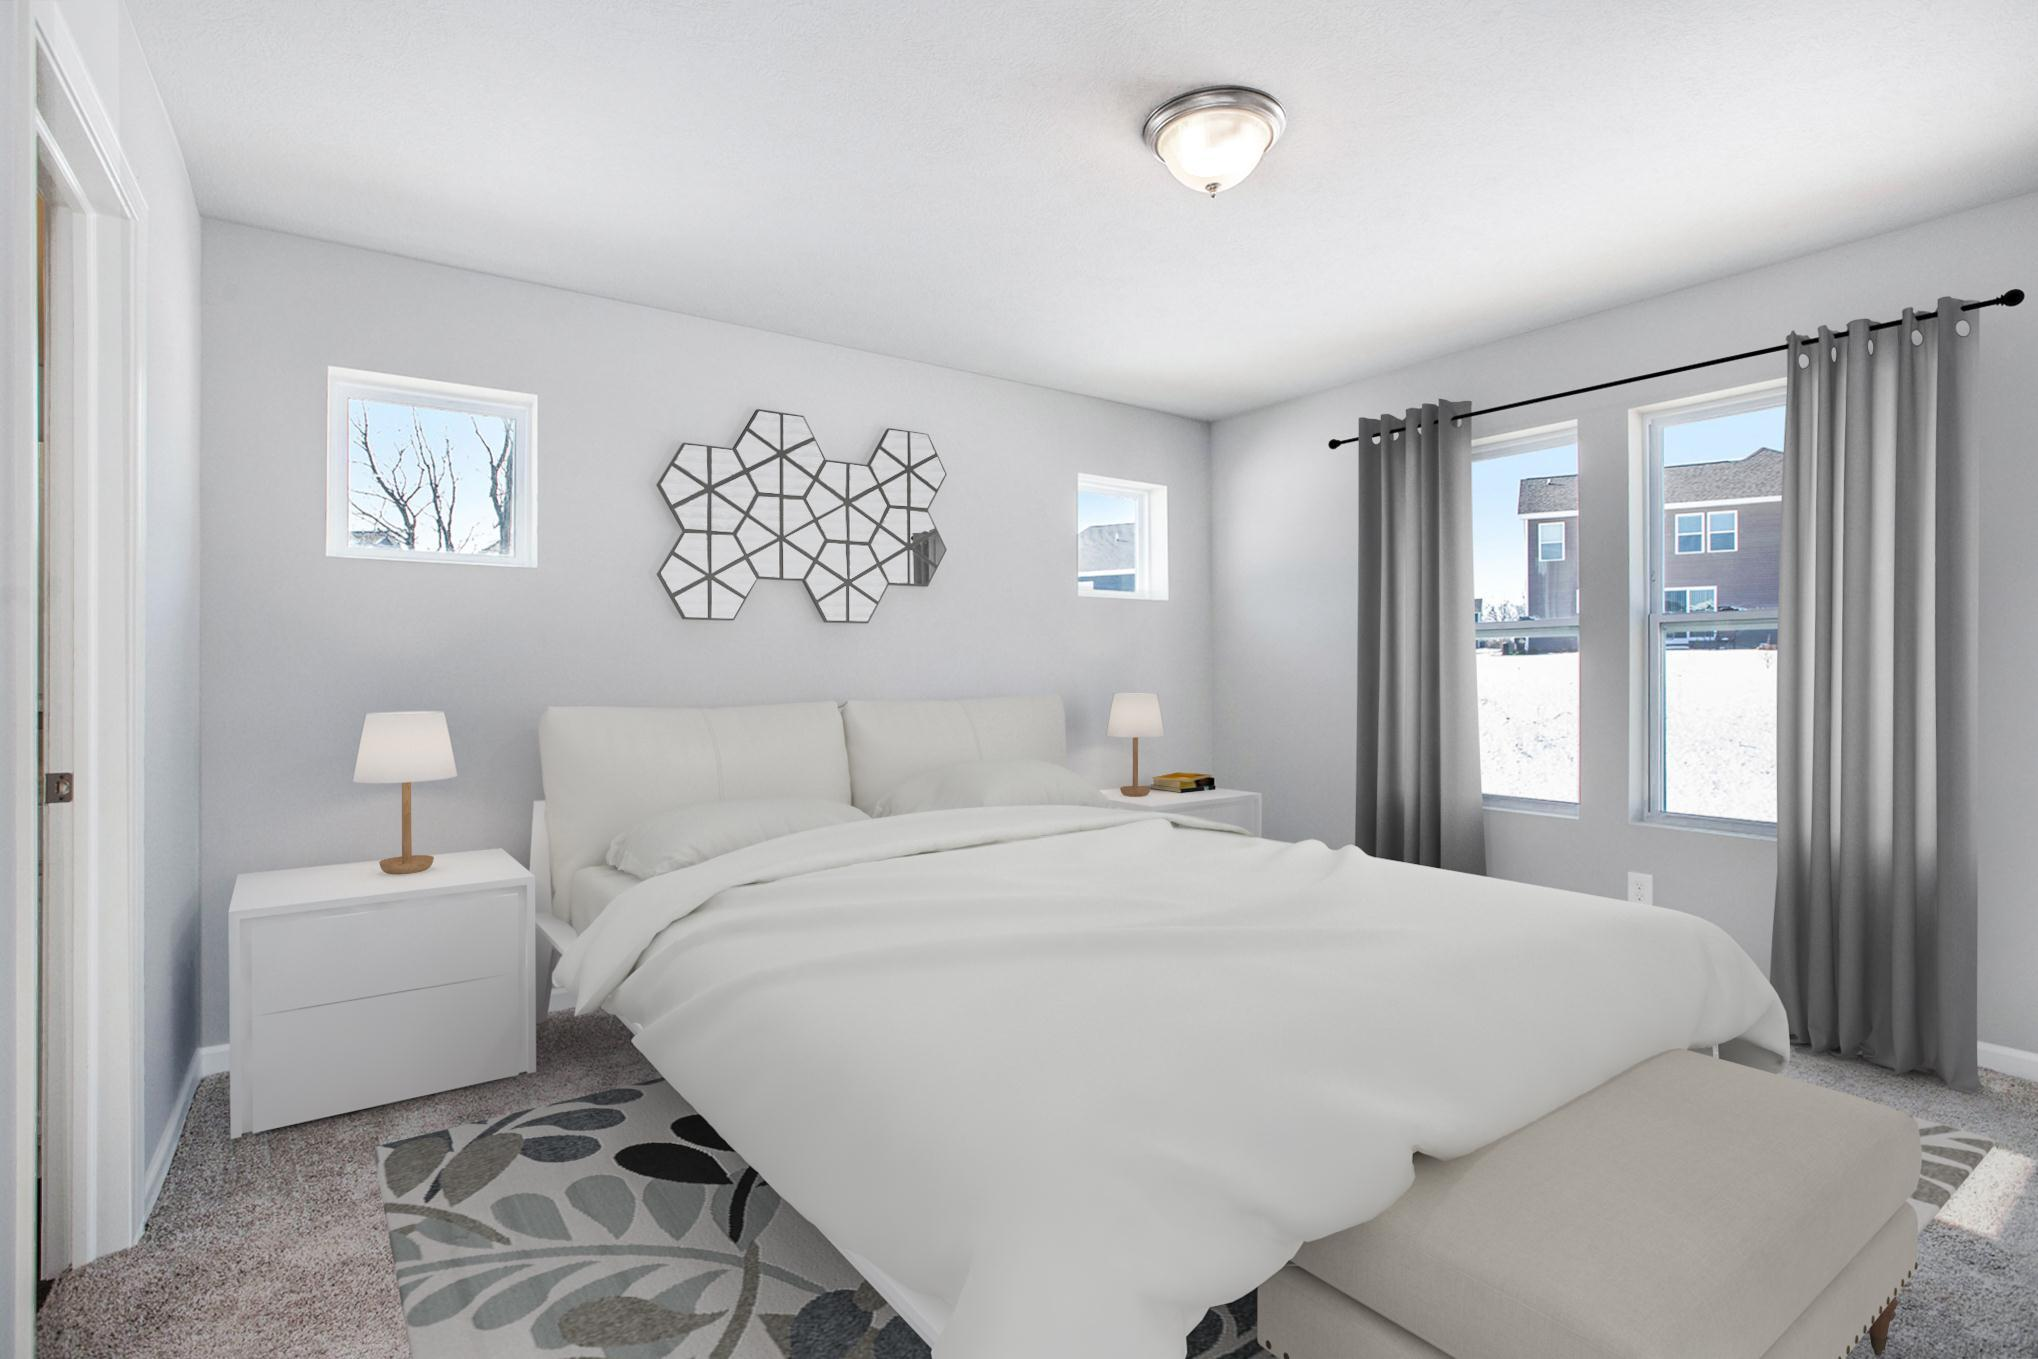 Bedroom featured in the Elements 1800 By Allen Edwin Homes in Ann Arbor, MI